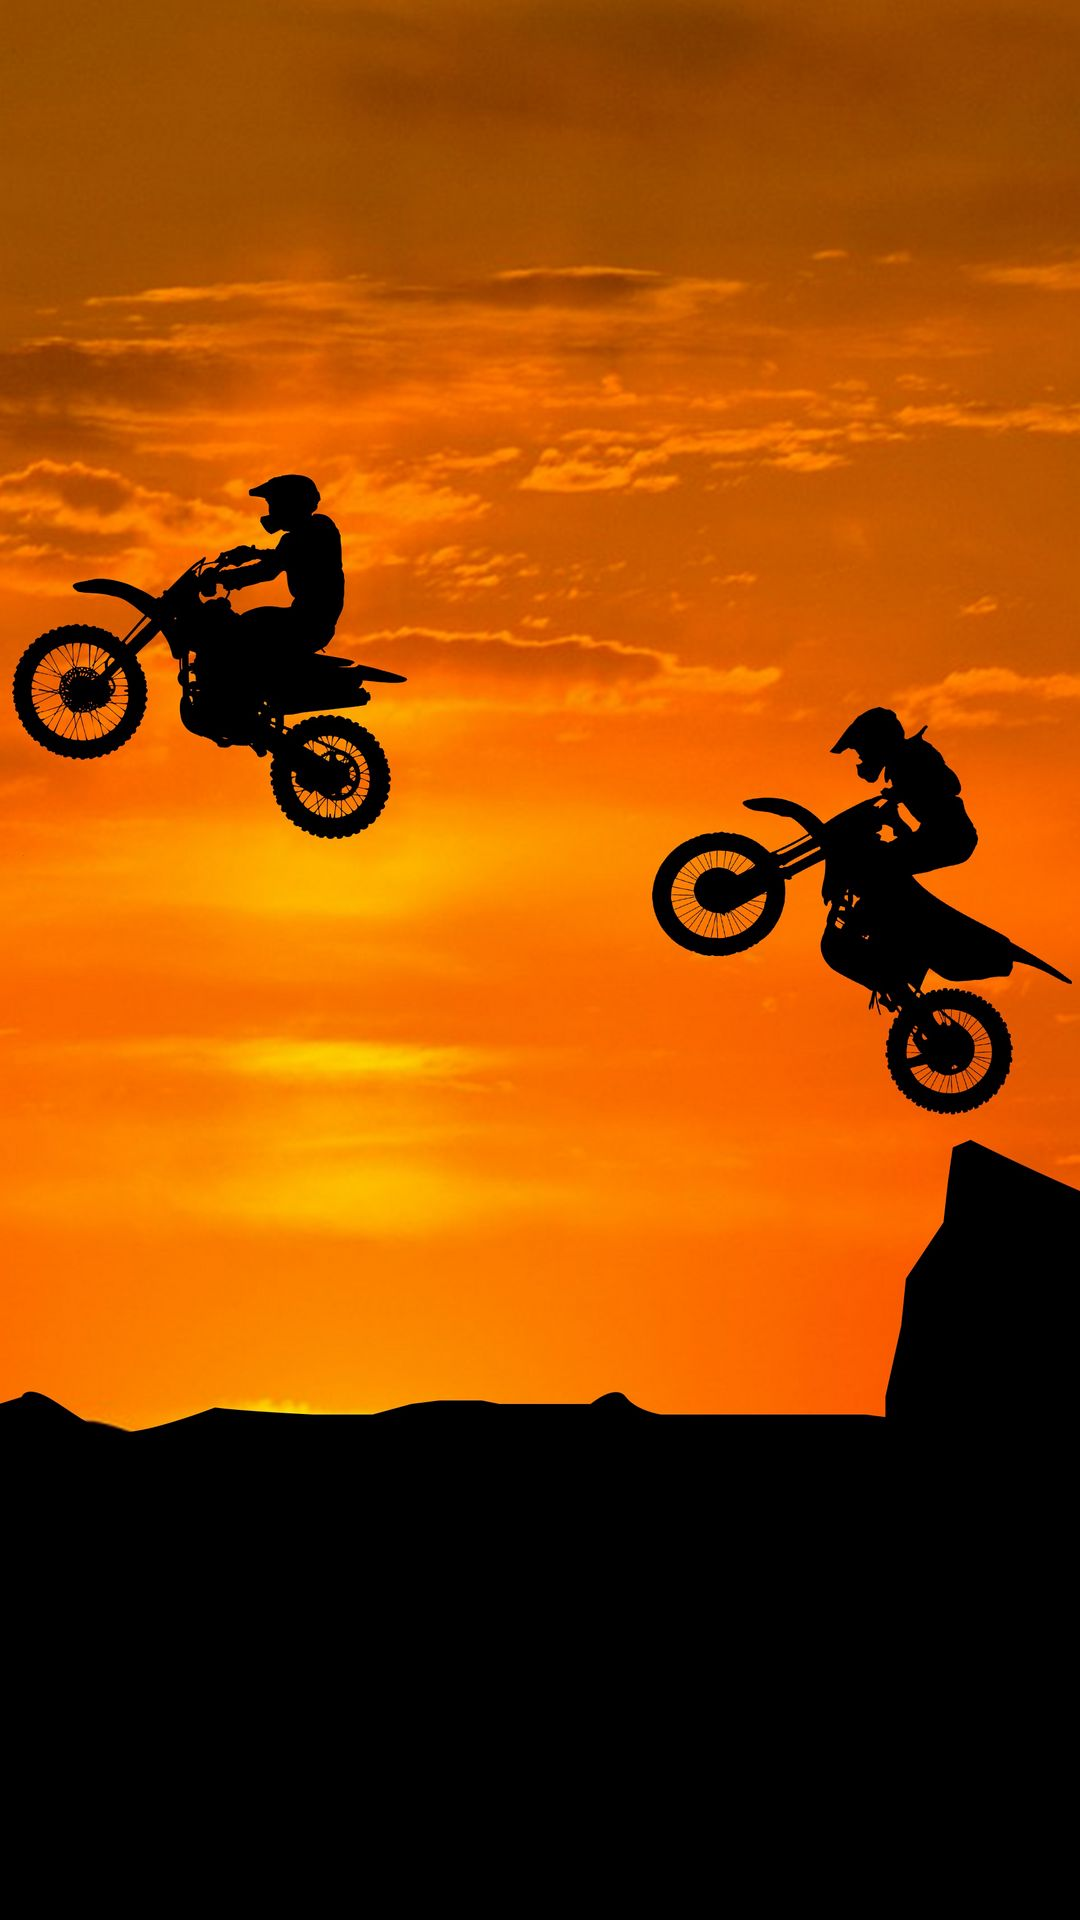 1080x1920 Wallpaper motorcyclist, silhouettes, trick, hill